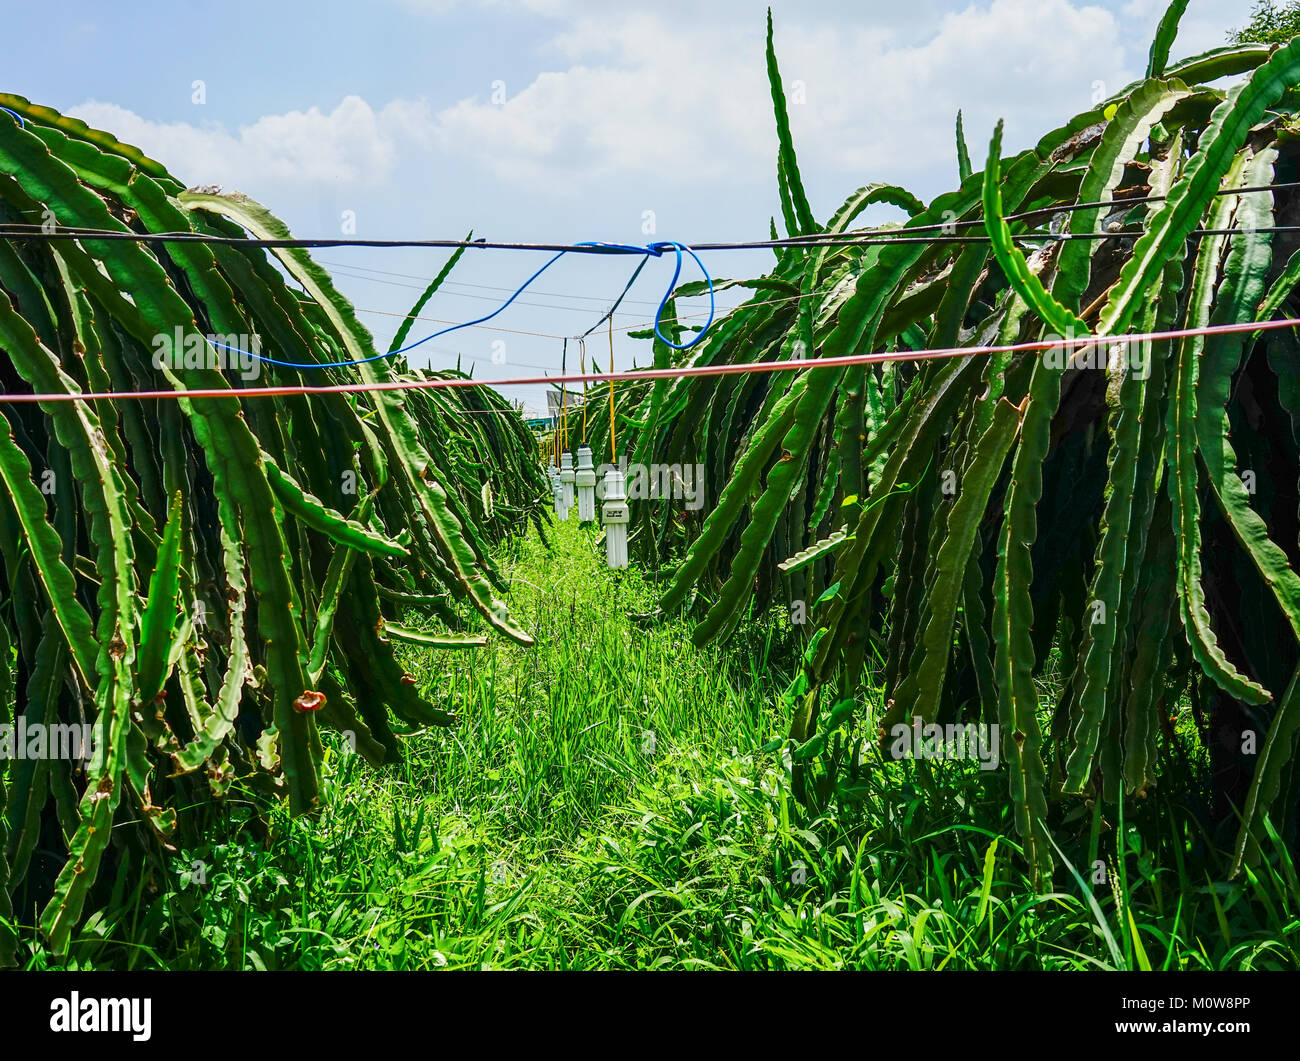 Pictures Of Dragon Fruit Plantation